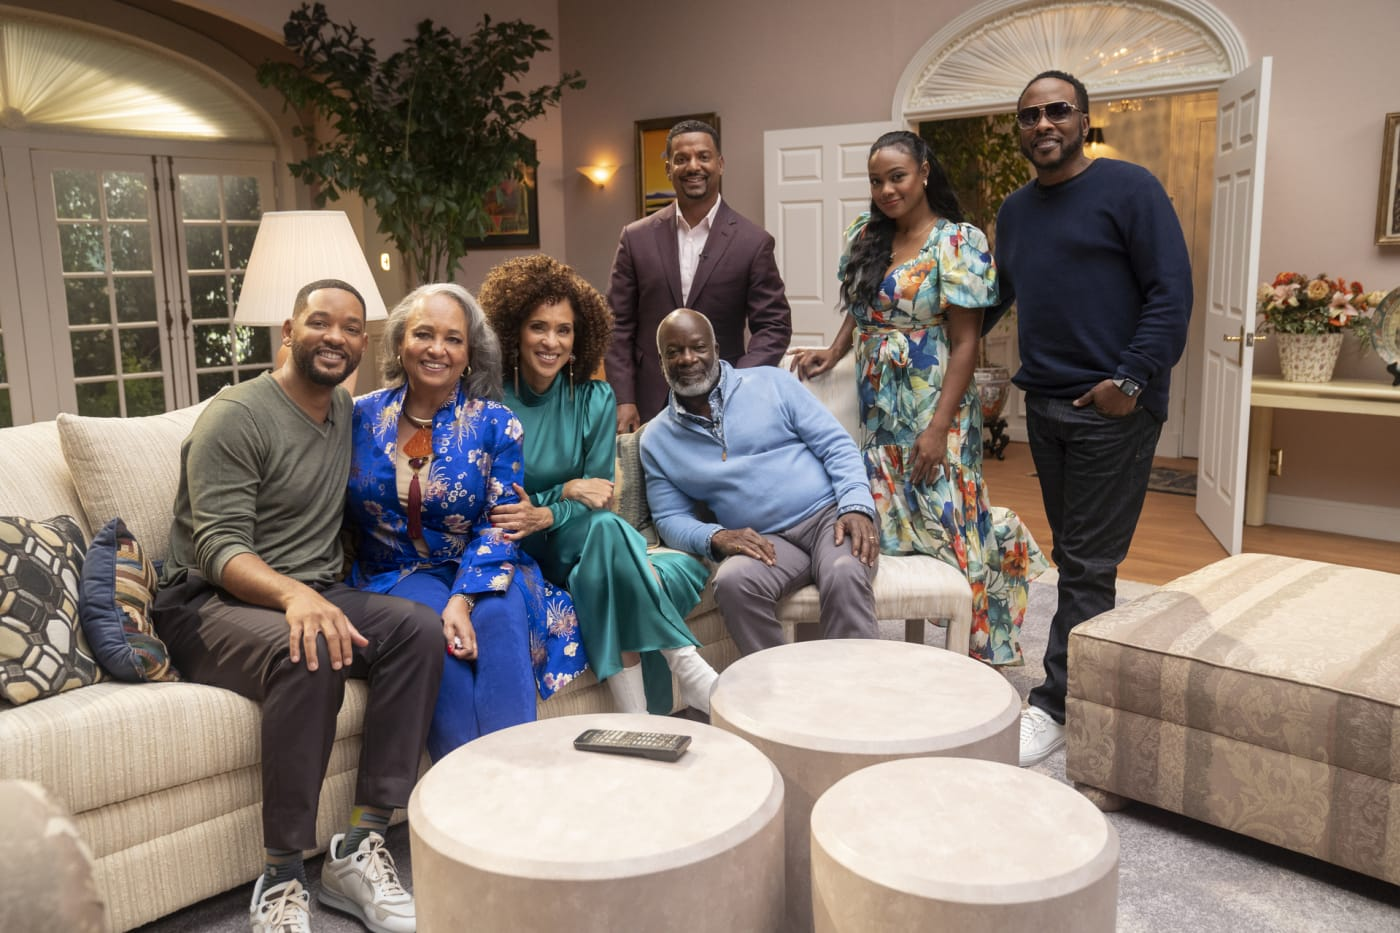 The Fresh Prince of Bel Air cast